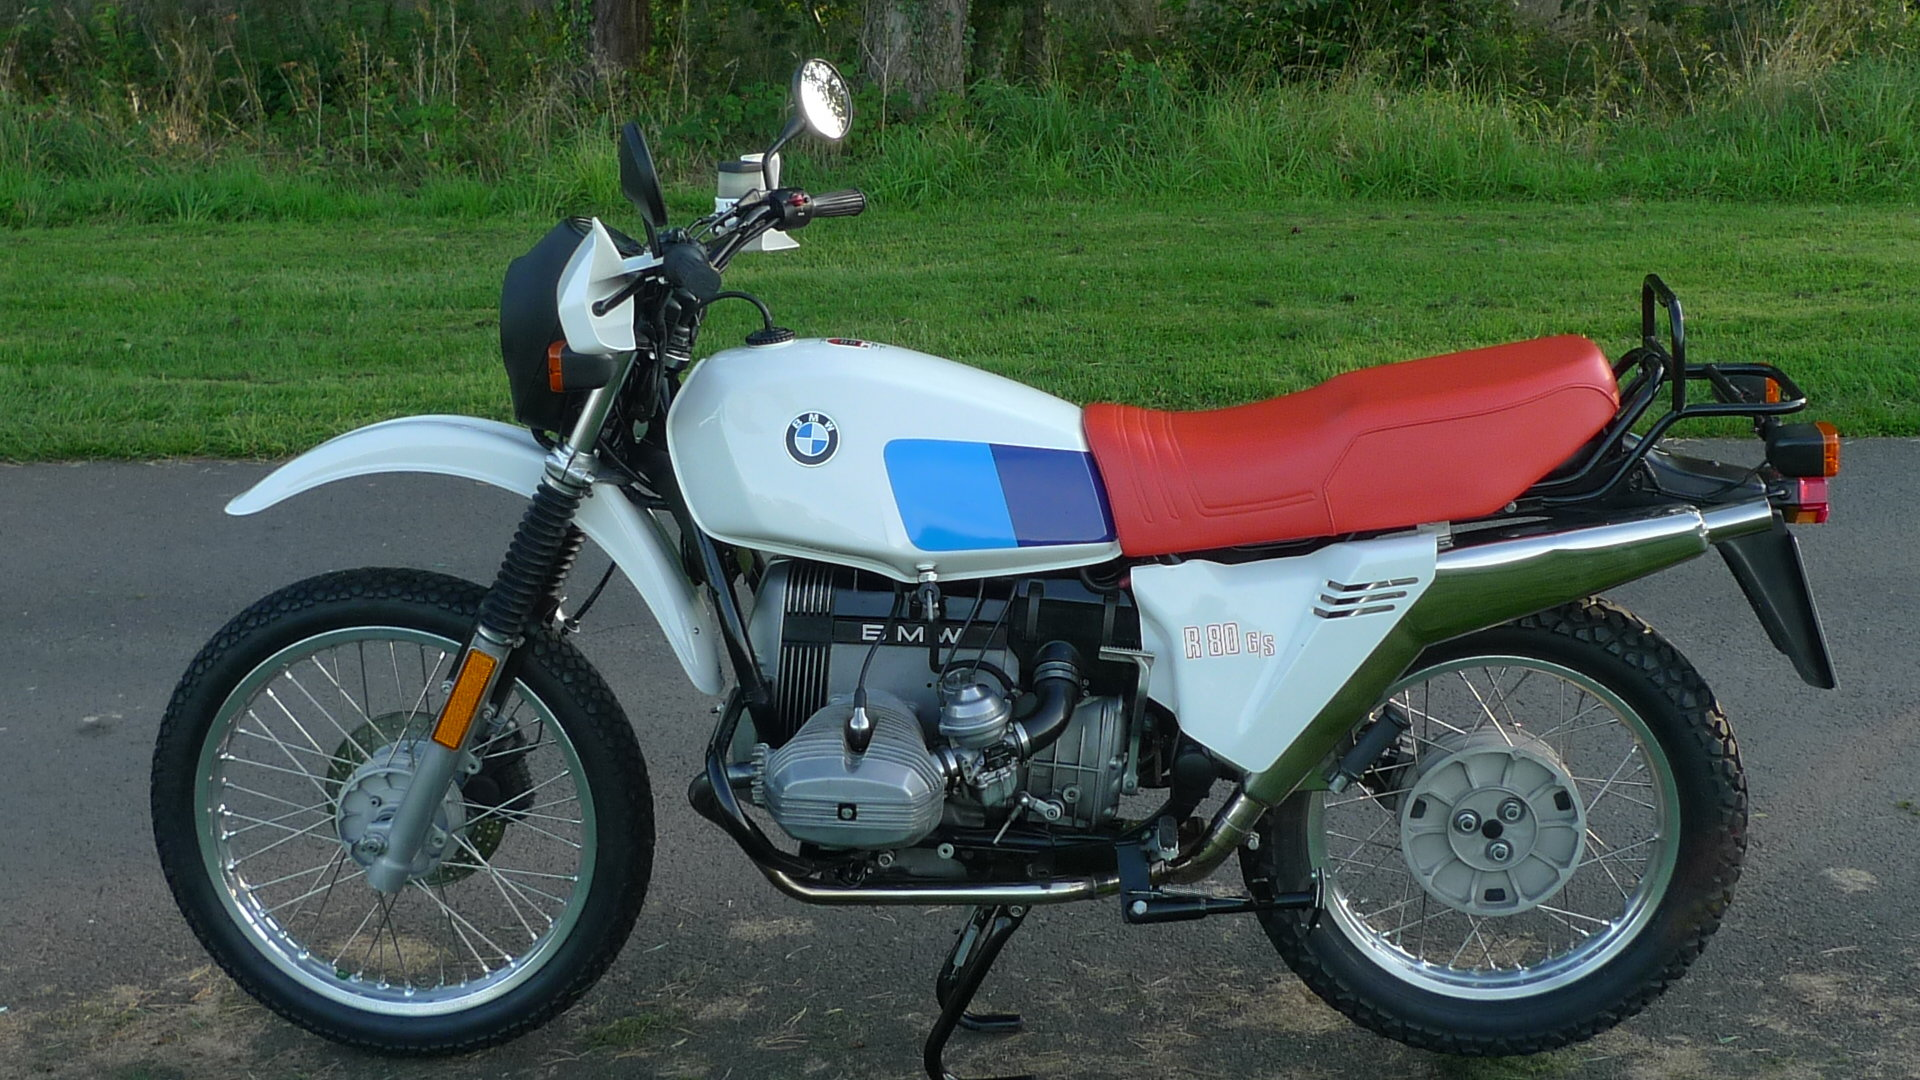 BMW R80 G/S 1981 UK Bike For Sale (picture 1 of 6)